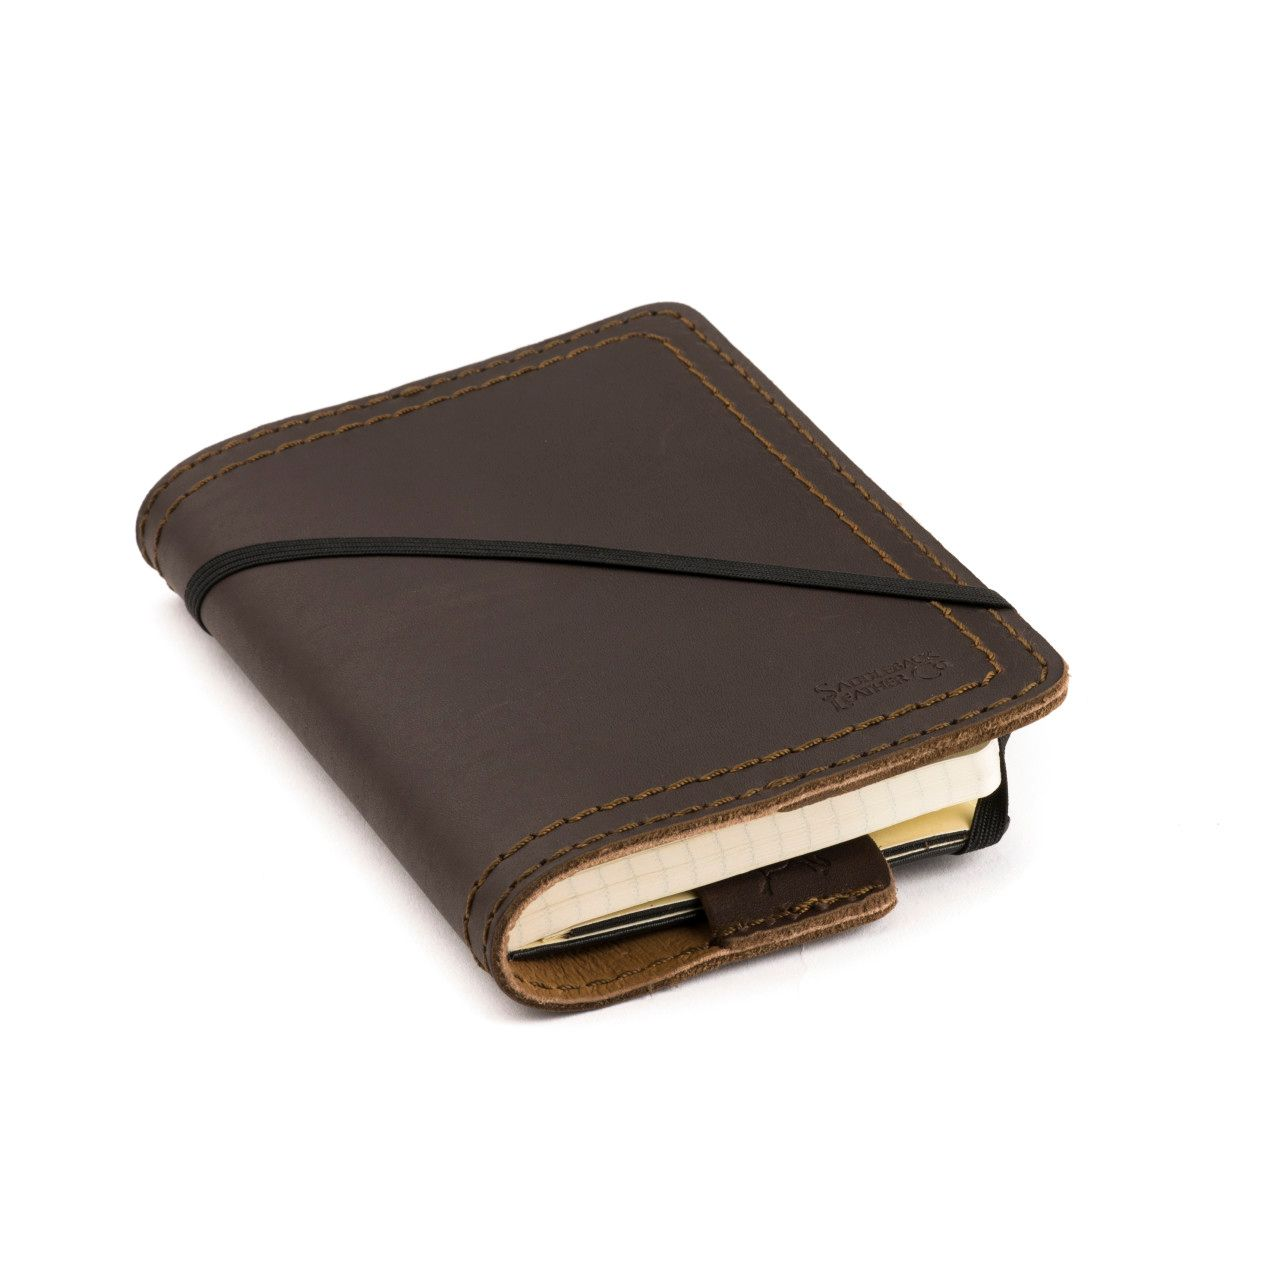 leather notebook cover small in dark coffee brown leather